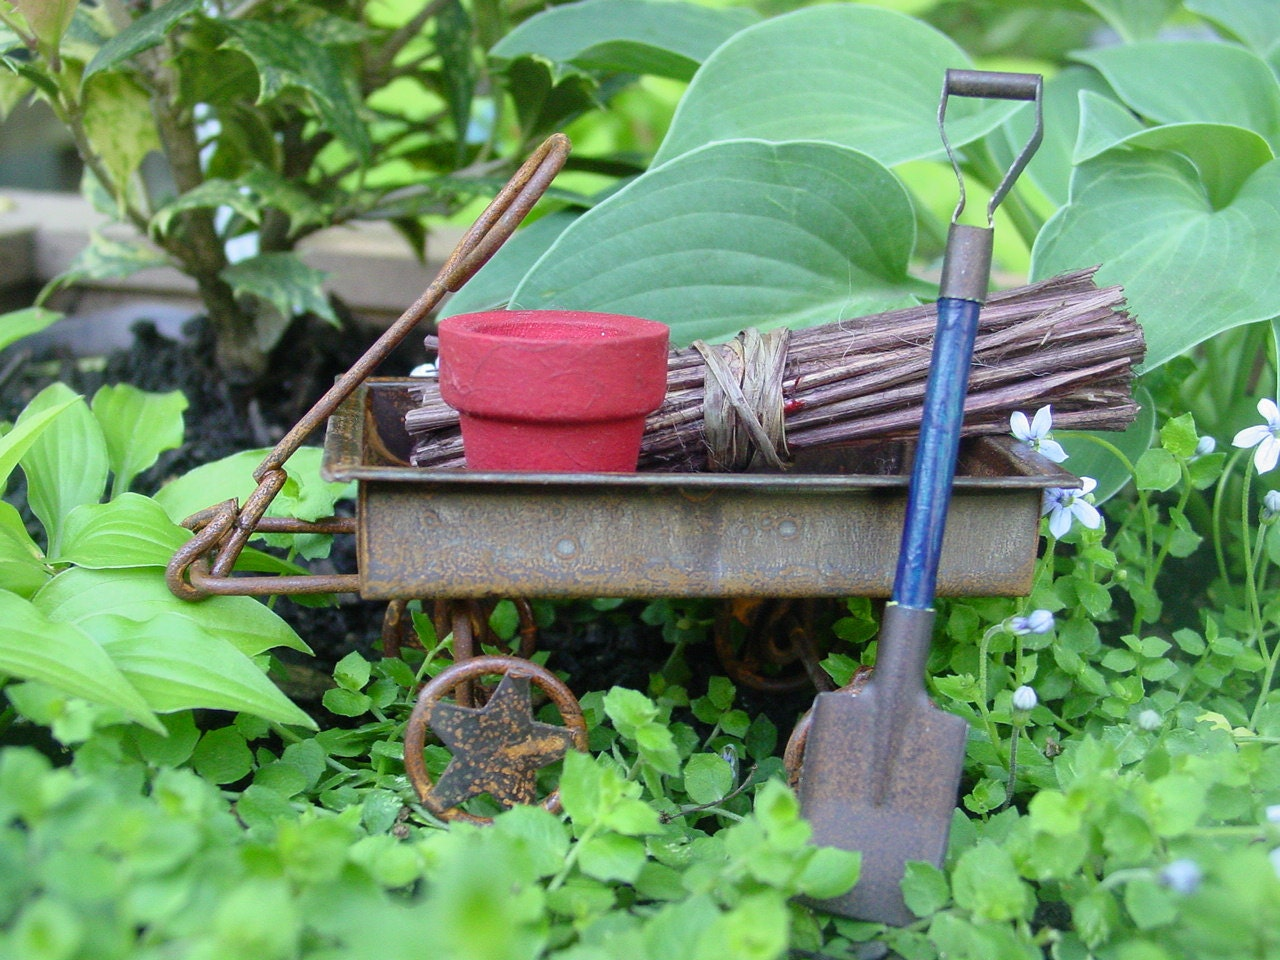 Fairy garden accessories miniature garden wagon and tools for Garden decor accents